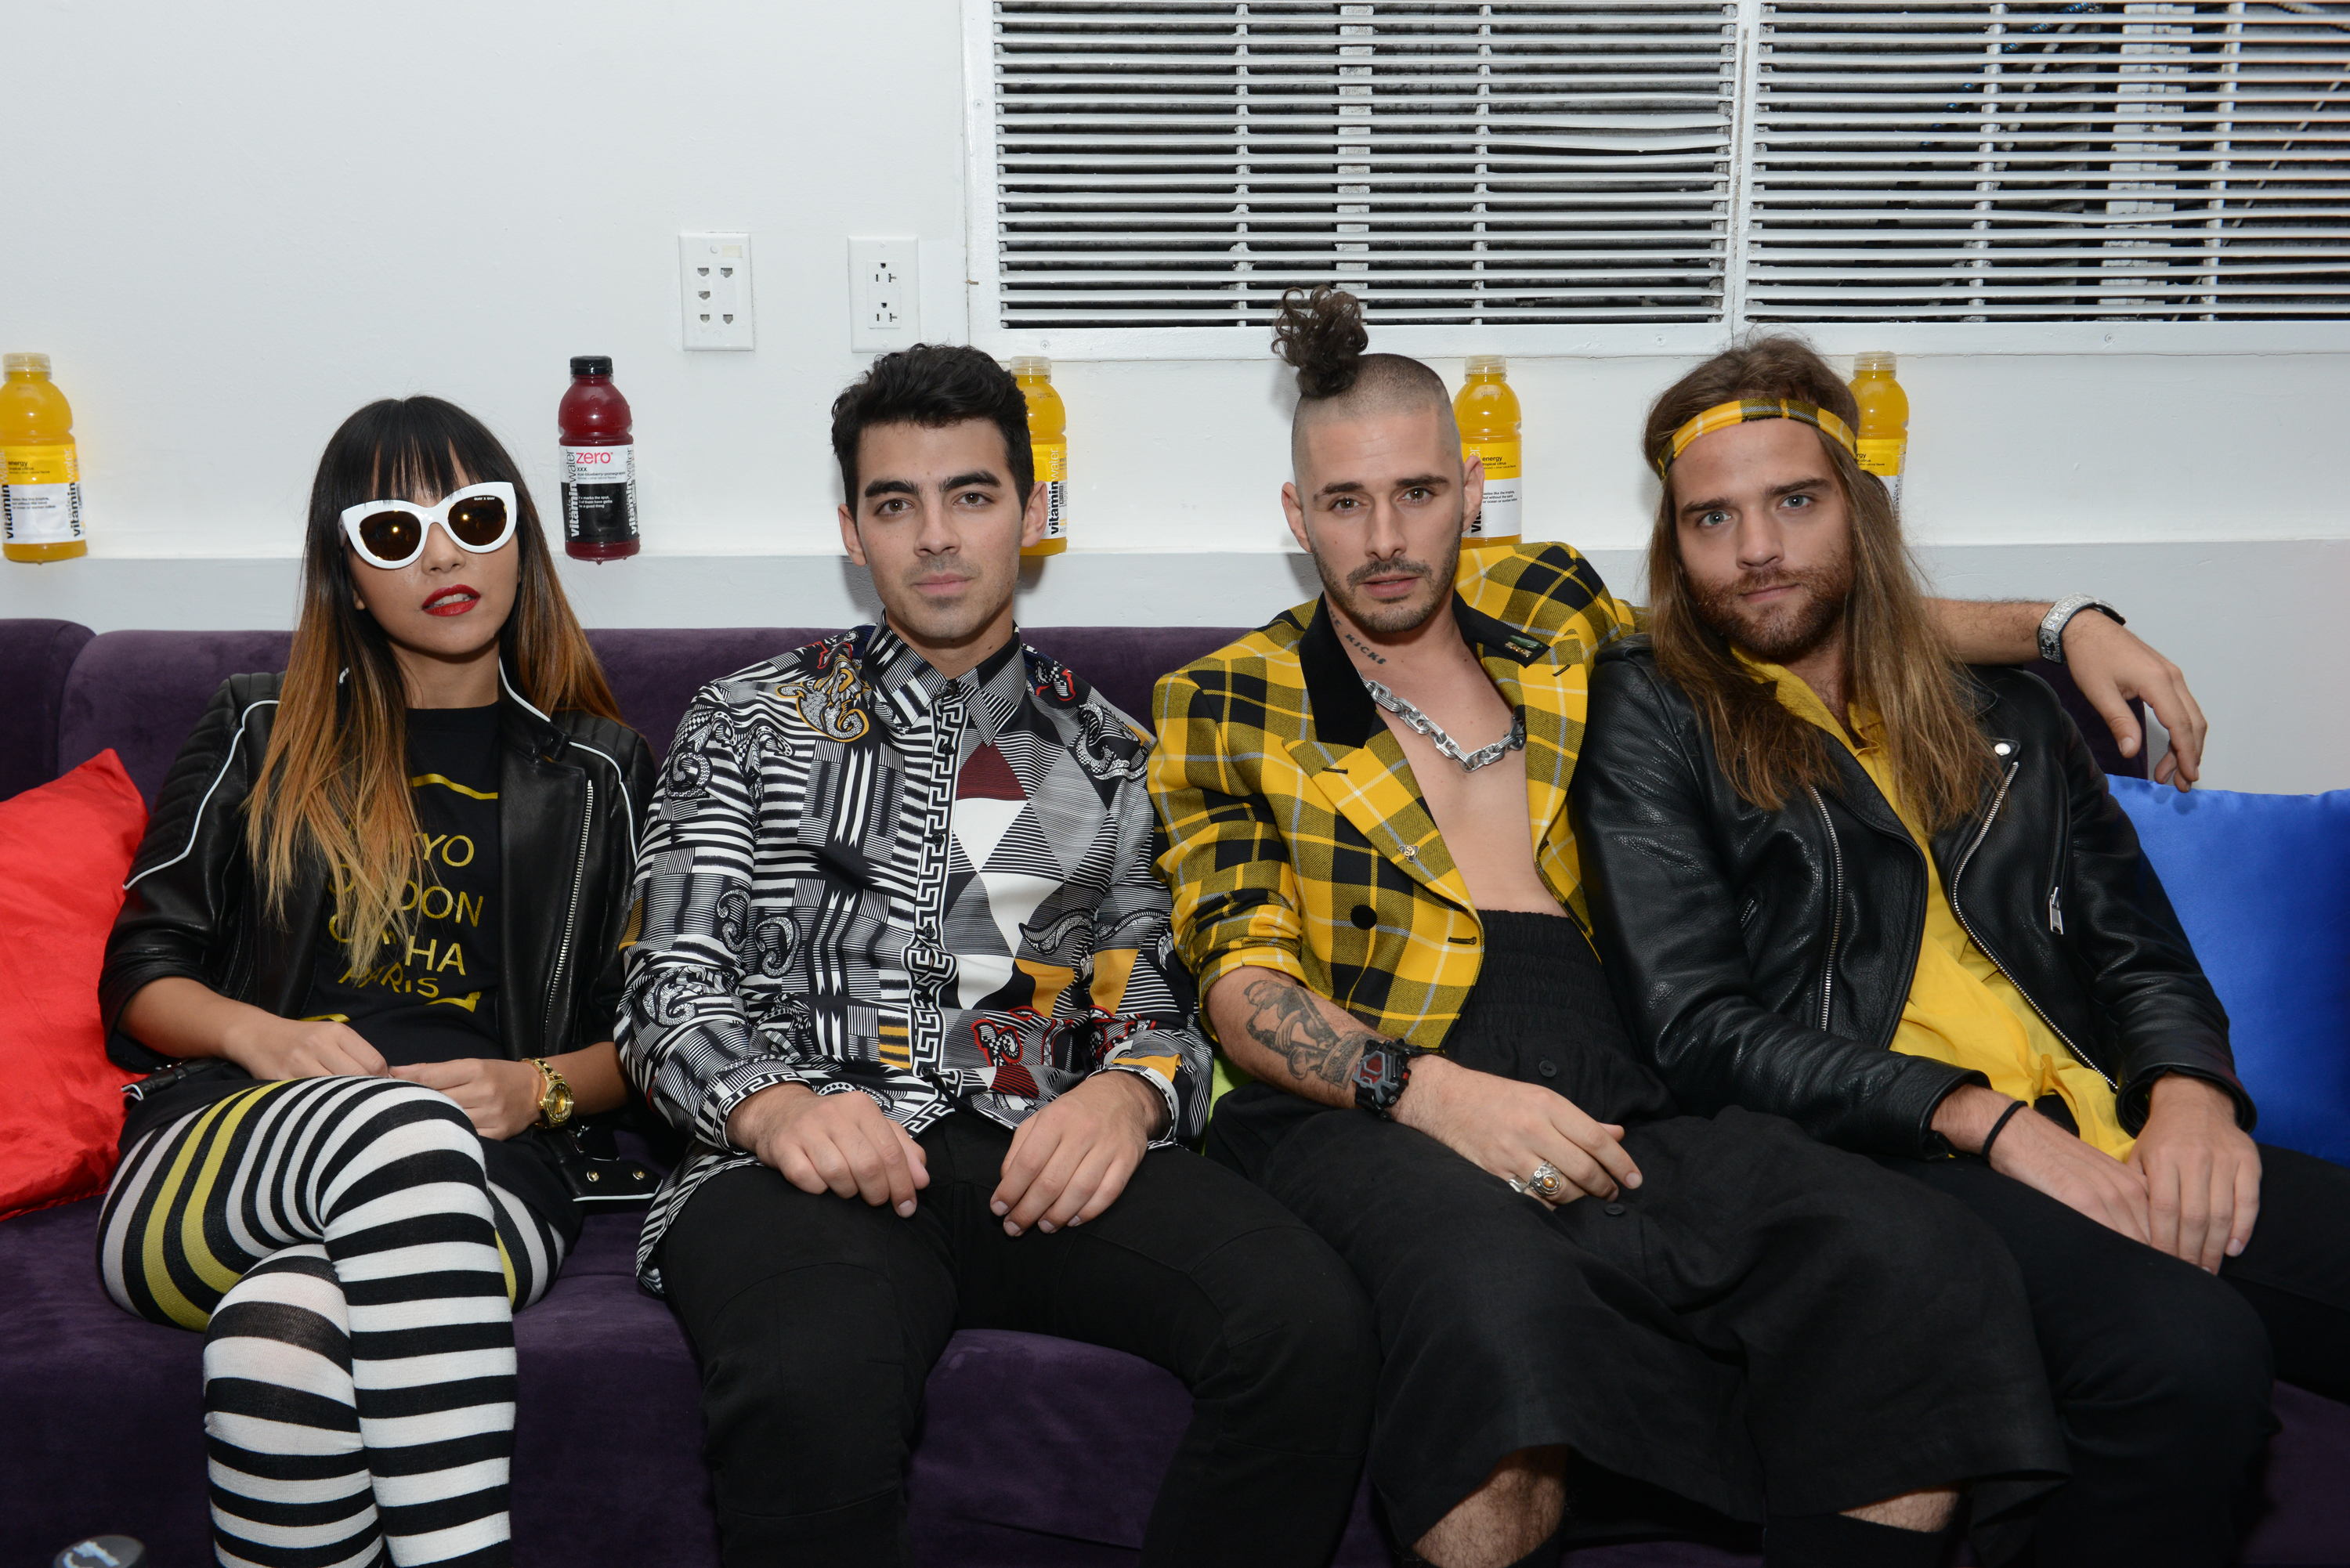 Dnce Cake By The Ocean Music Video Teaser Shows The Band S Cheeky Sense Of Humor